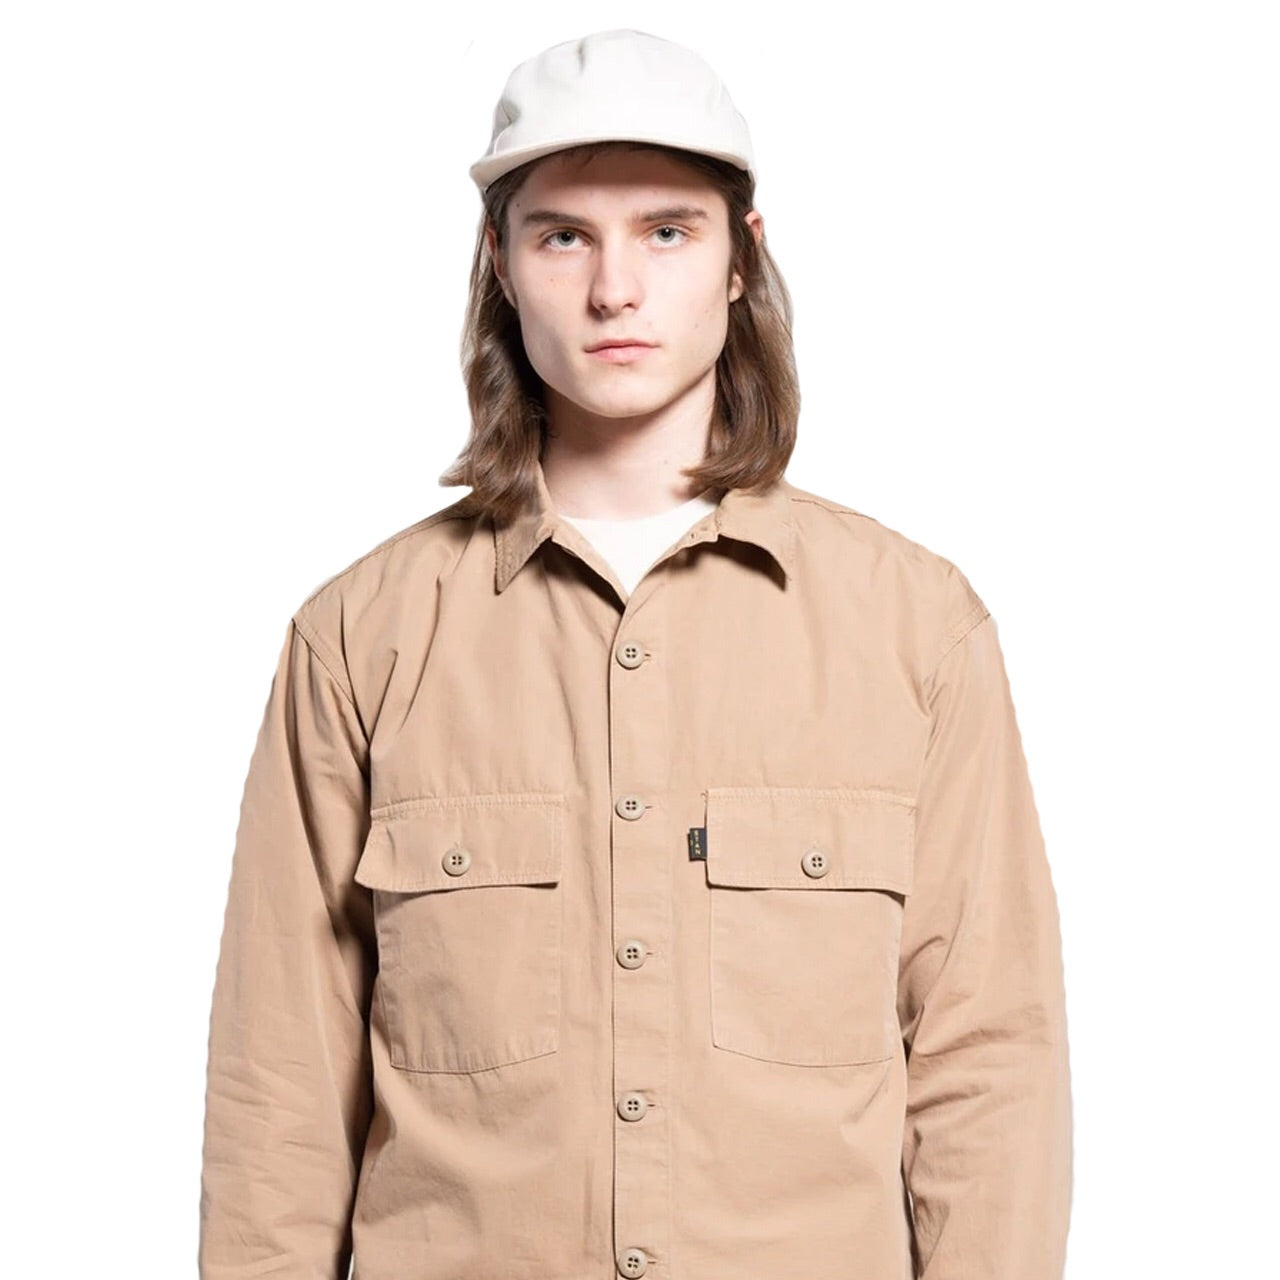 STAN RAY MEN'S CPO SHIRT BREAK SAND